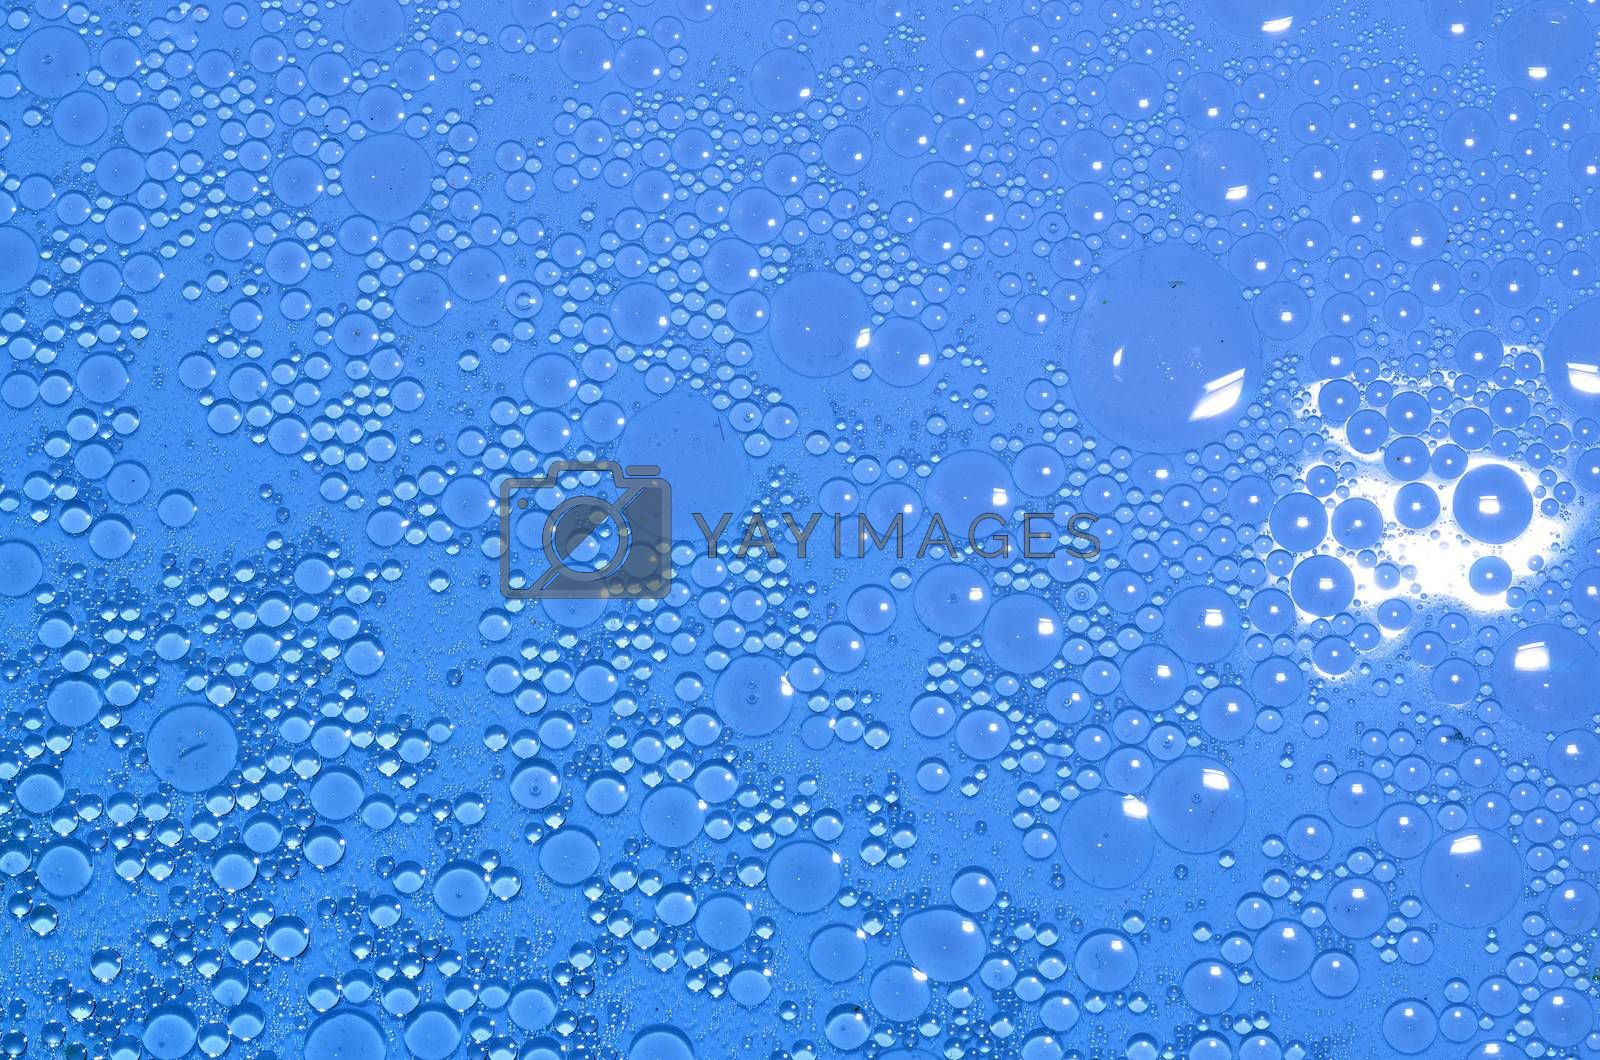 small blue circles of oil on water surface